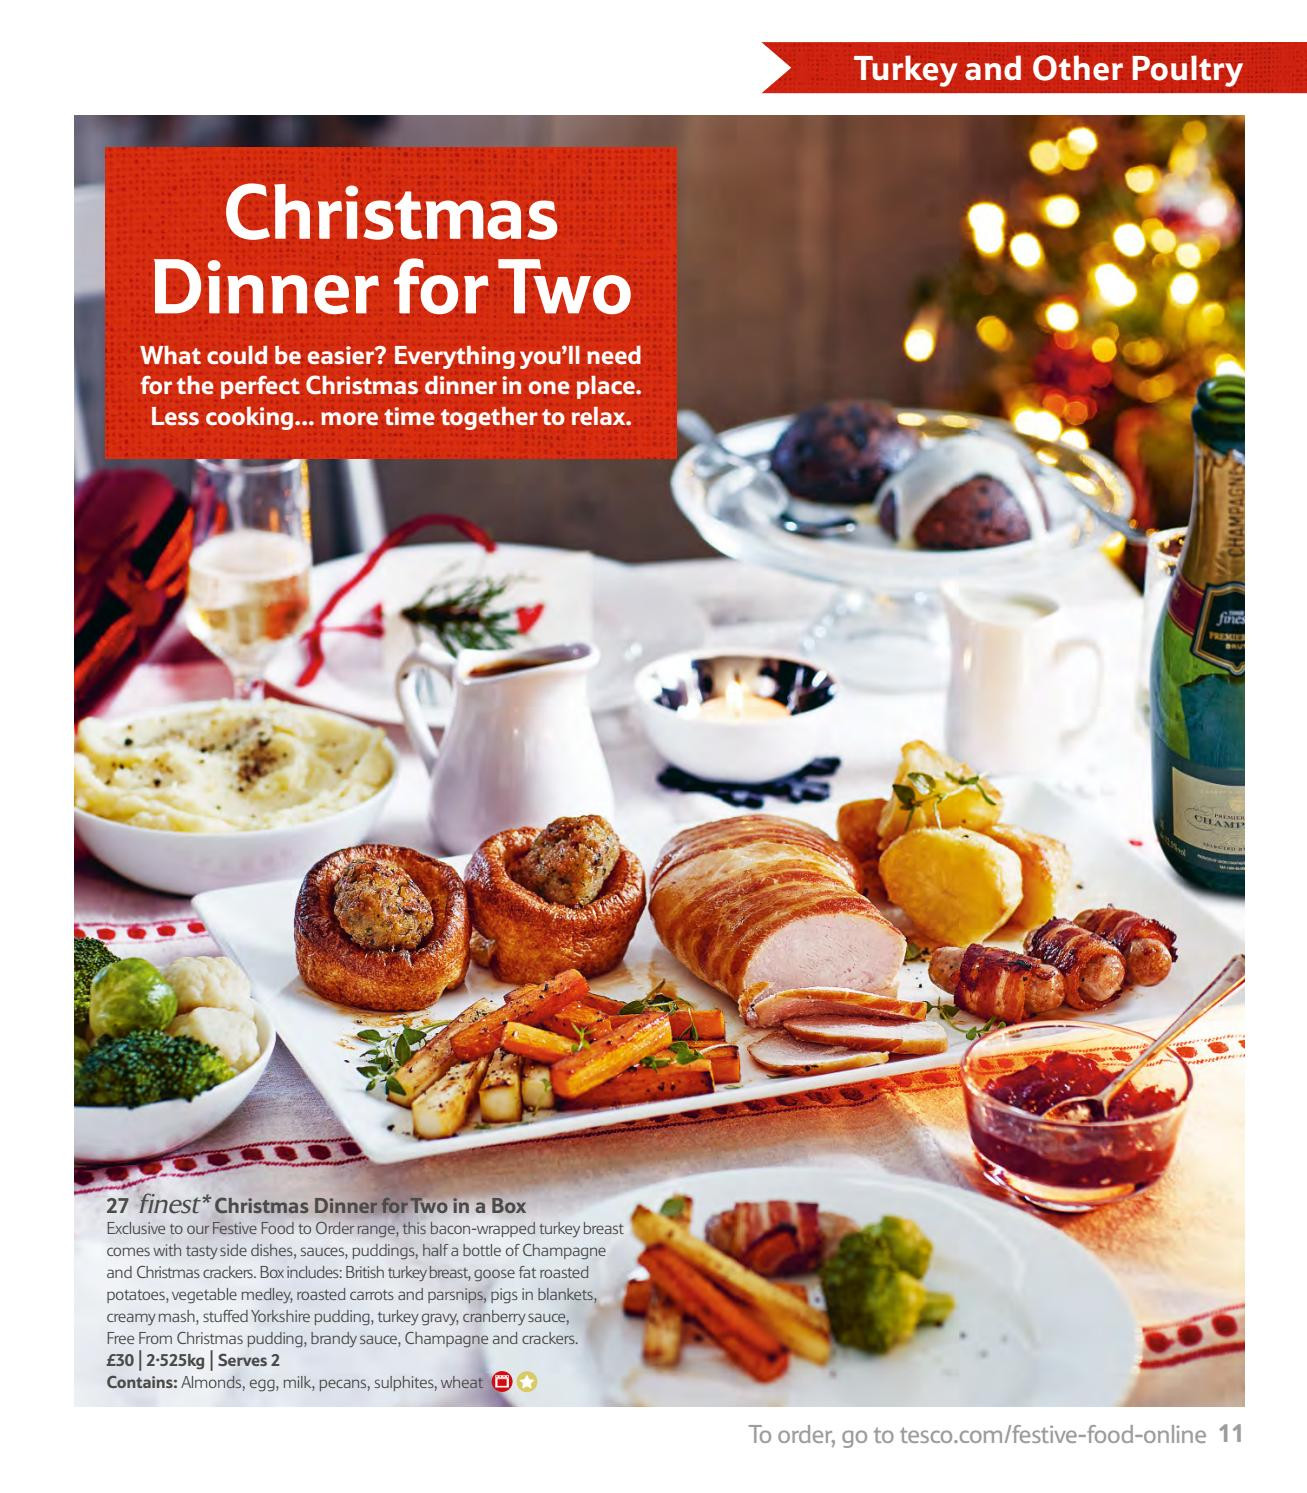 Christmas Dinners For 2  Tesco Festive Food to Order 2016 by Tesco magazine Issuu